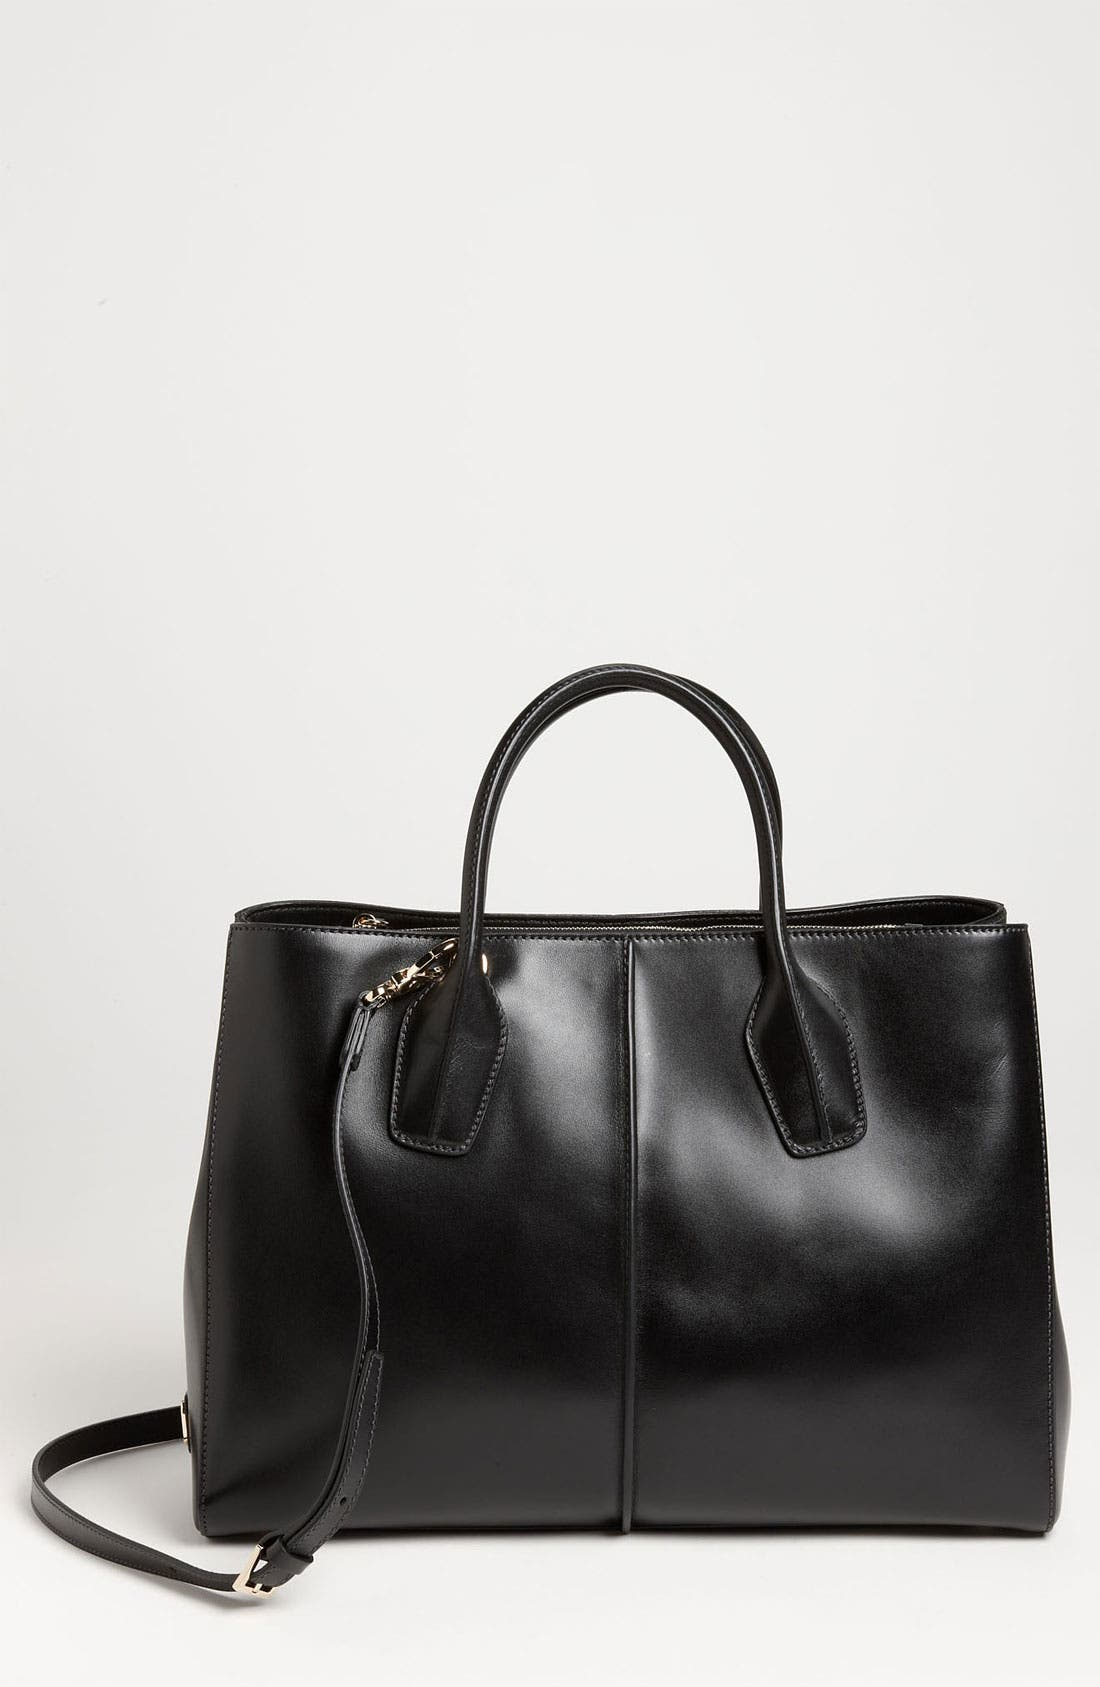 Alternate Image 1 Selected - Tod's 'D-Styling - Lavoro' Leather Tote